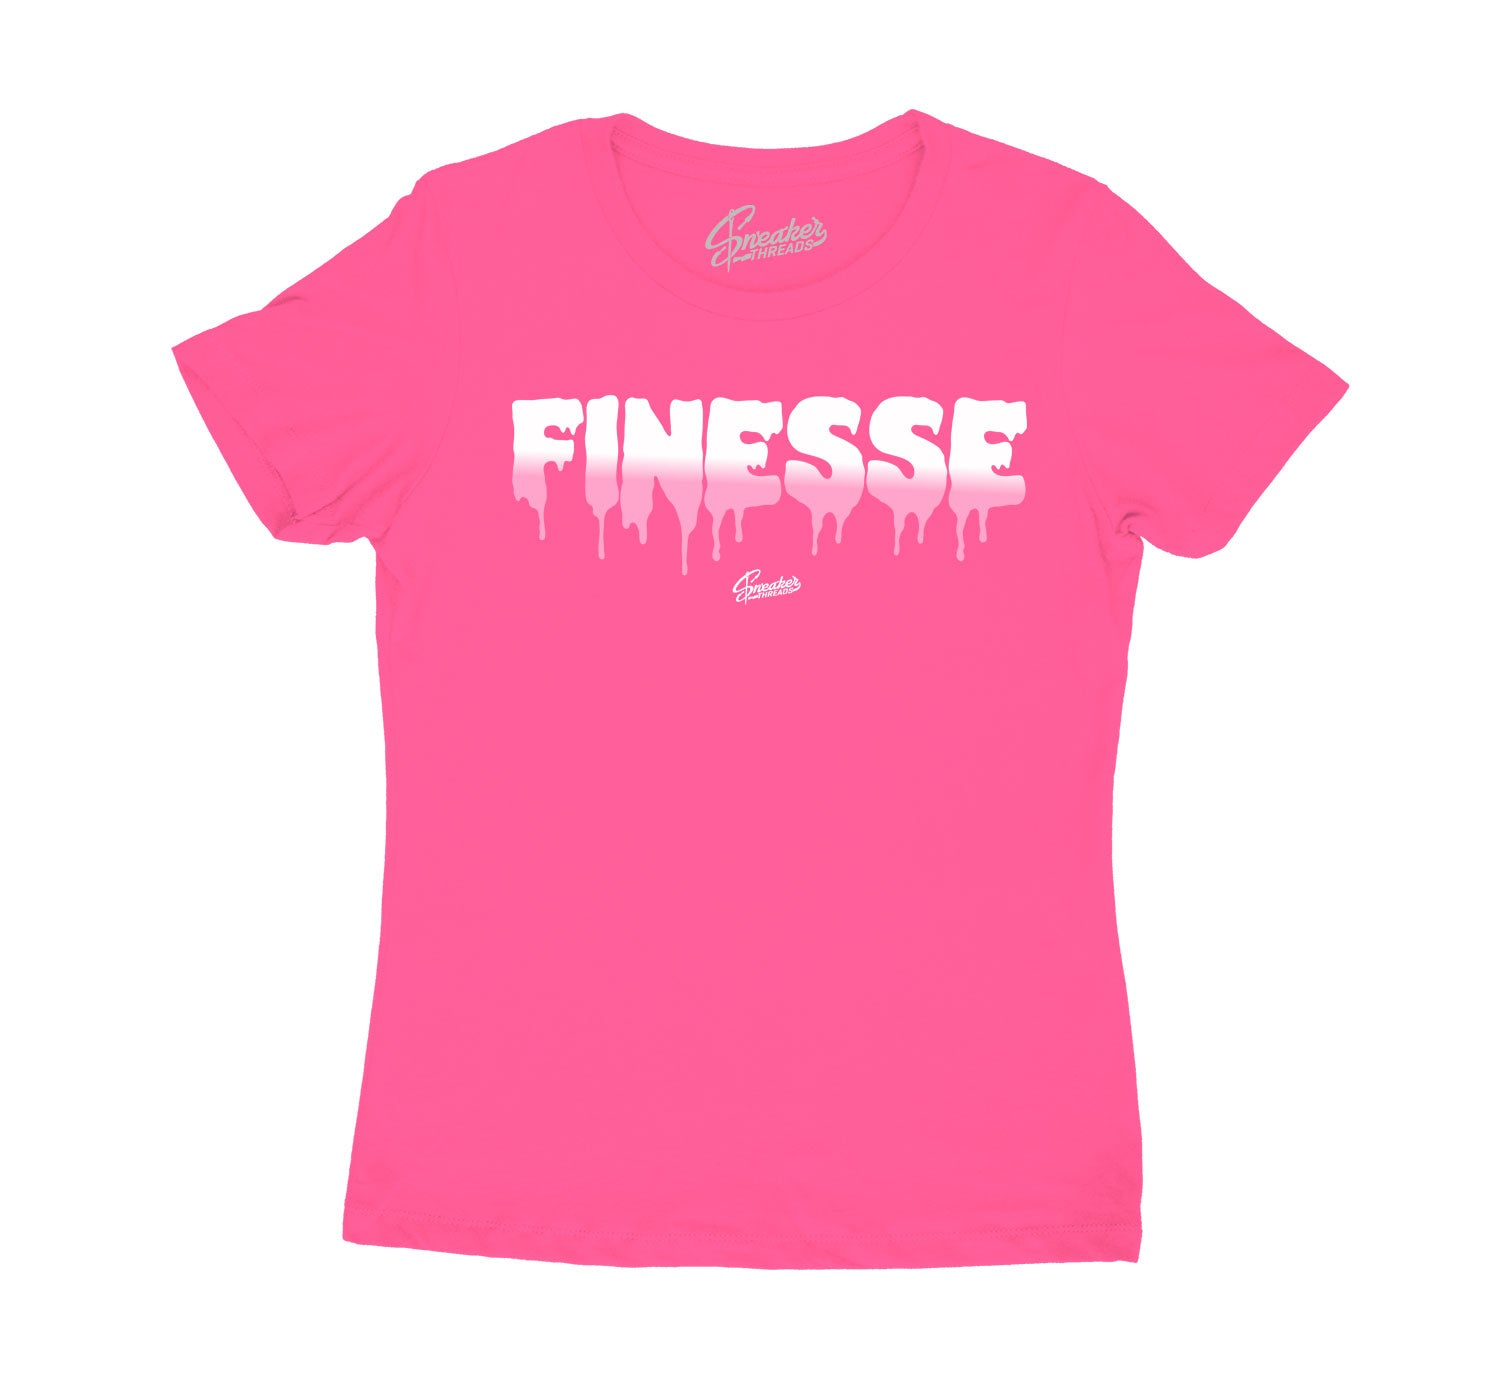 Womens Ice Cream 12 Shirt - Finesse - Pink